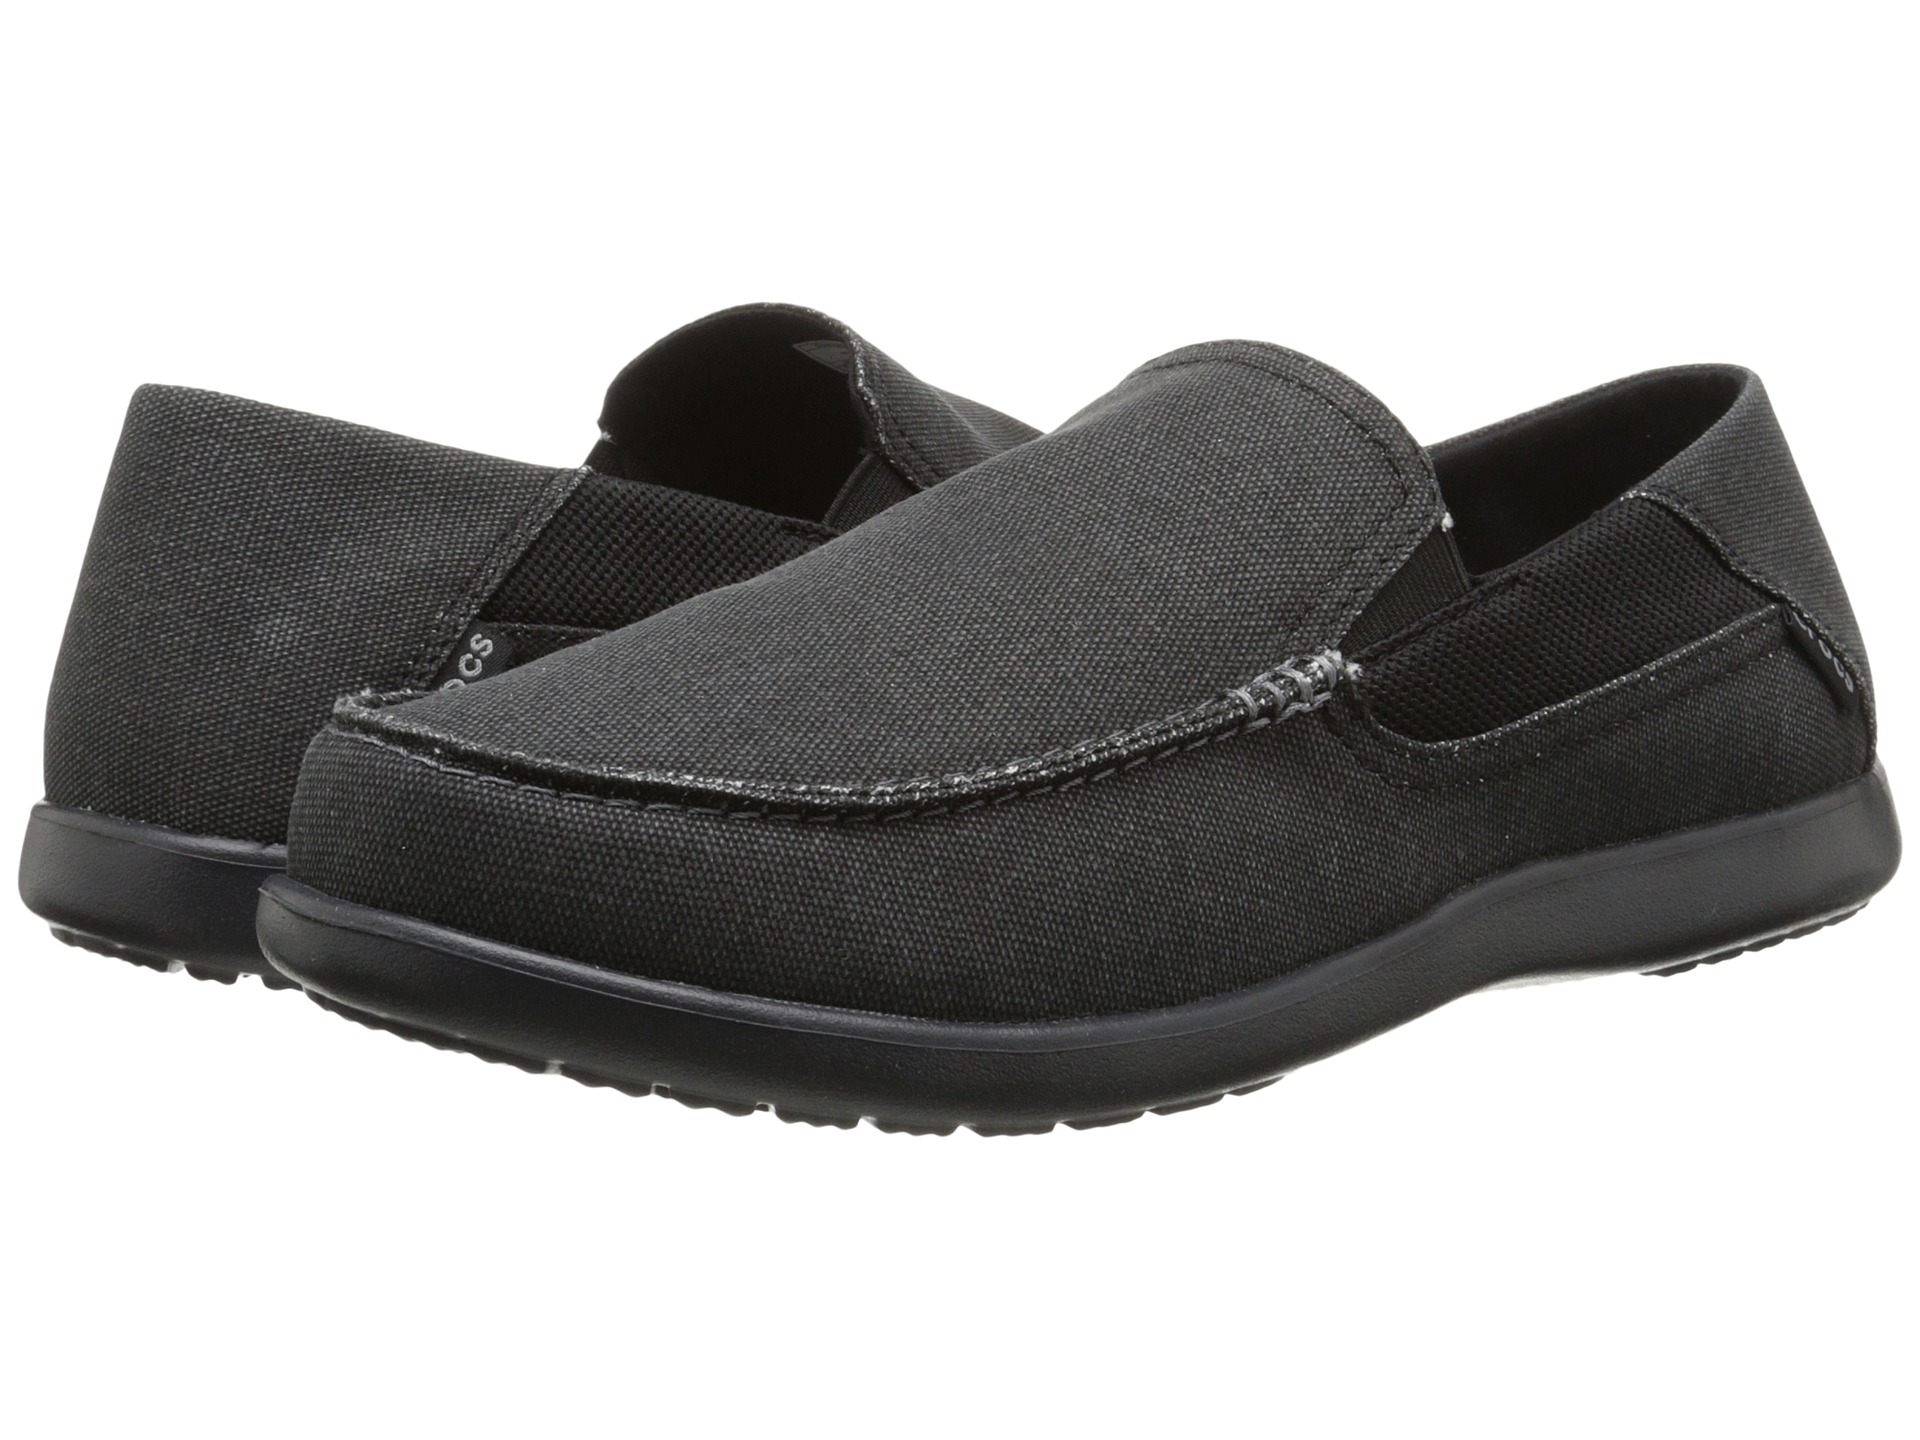 Enjoy Crocs™ comfort in a traditionally-styled canvas loafer with the Santa Cruz 2 Luxe Slip-On Shoes for Men. Proof that loafers can be truly comfortable, the Santa Cruz 2 Luxe features drop-in croslite™ material and memory foam footbeds for the same ergonomic support and comfort as a Crocs clog in a casual beach shoe style.